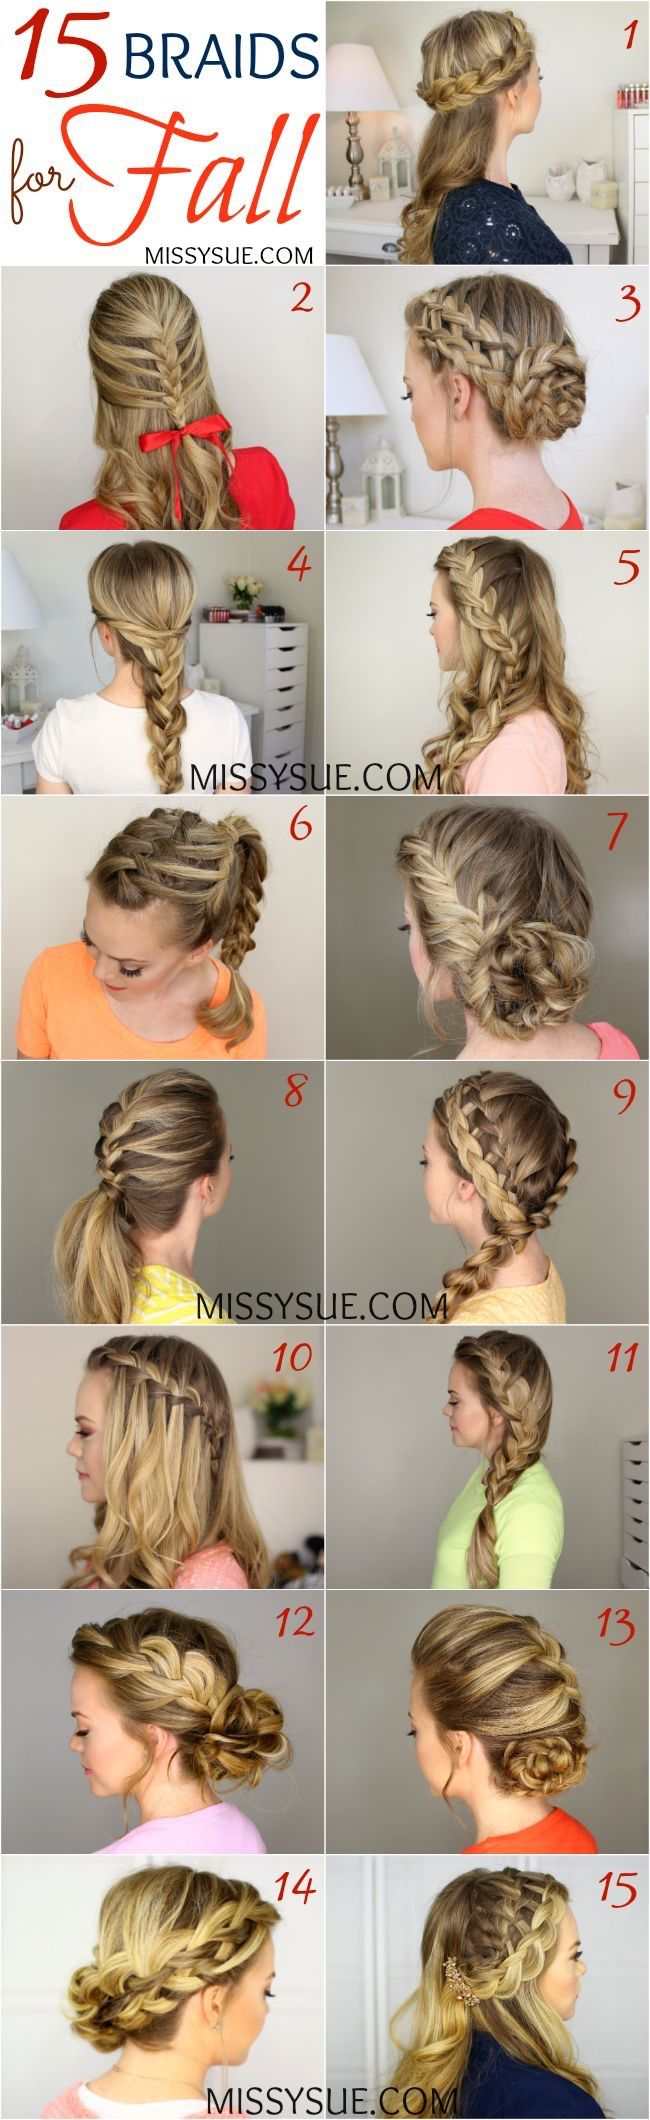 Pin by baylee elmore on hairstyles pinterest hair style makeup